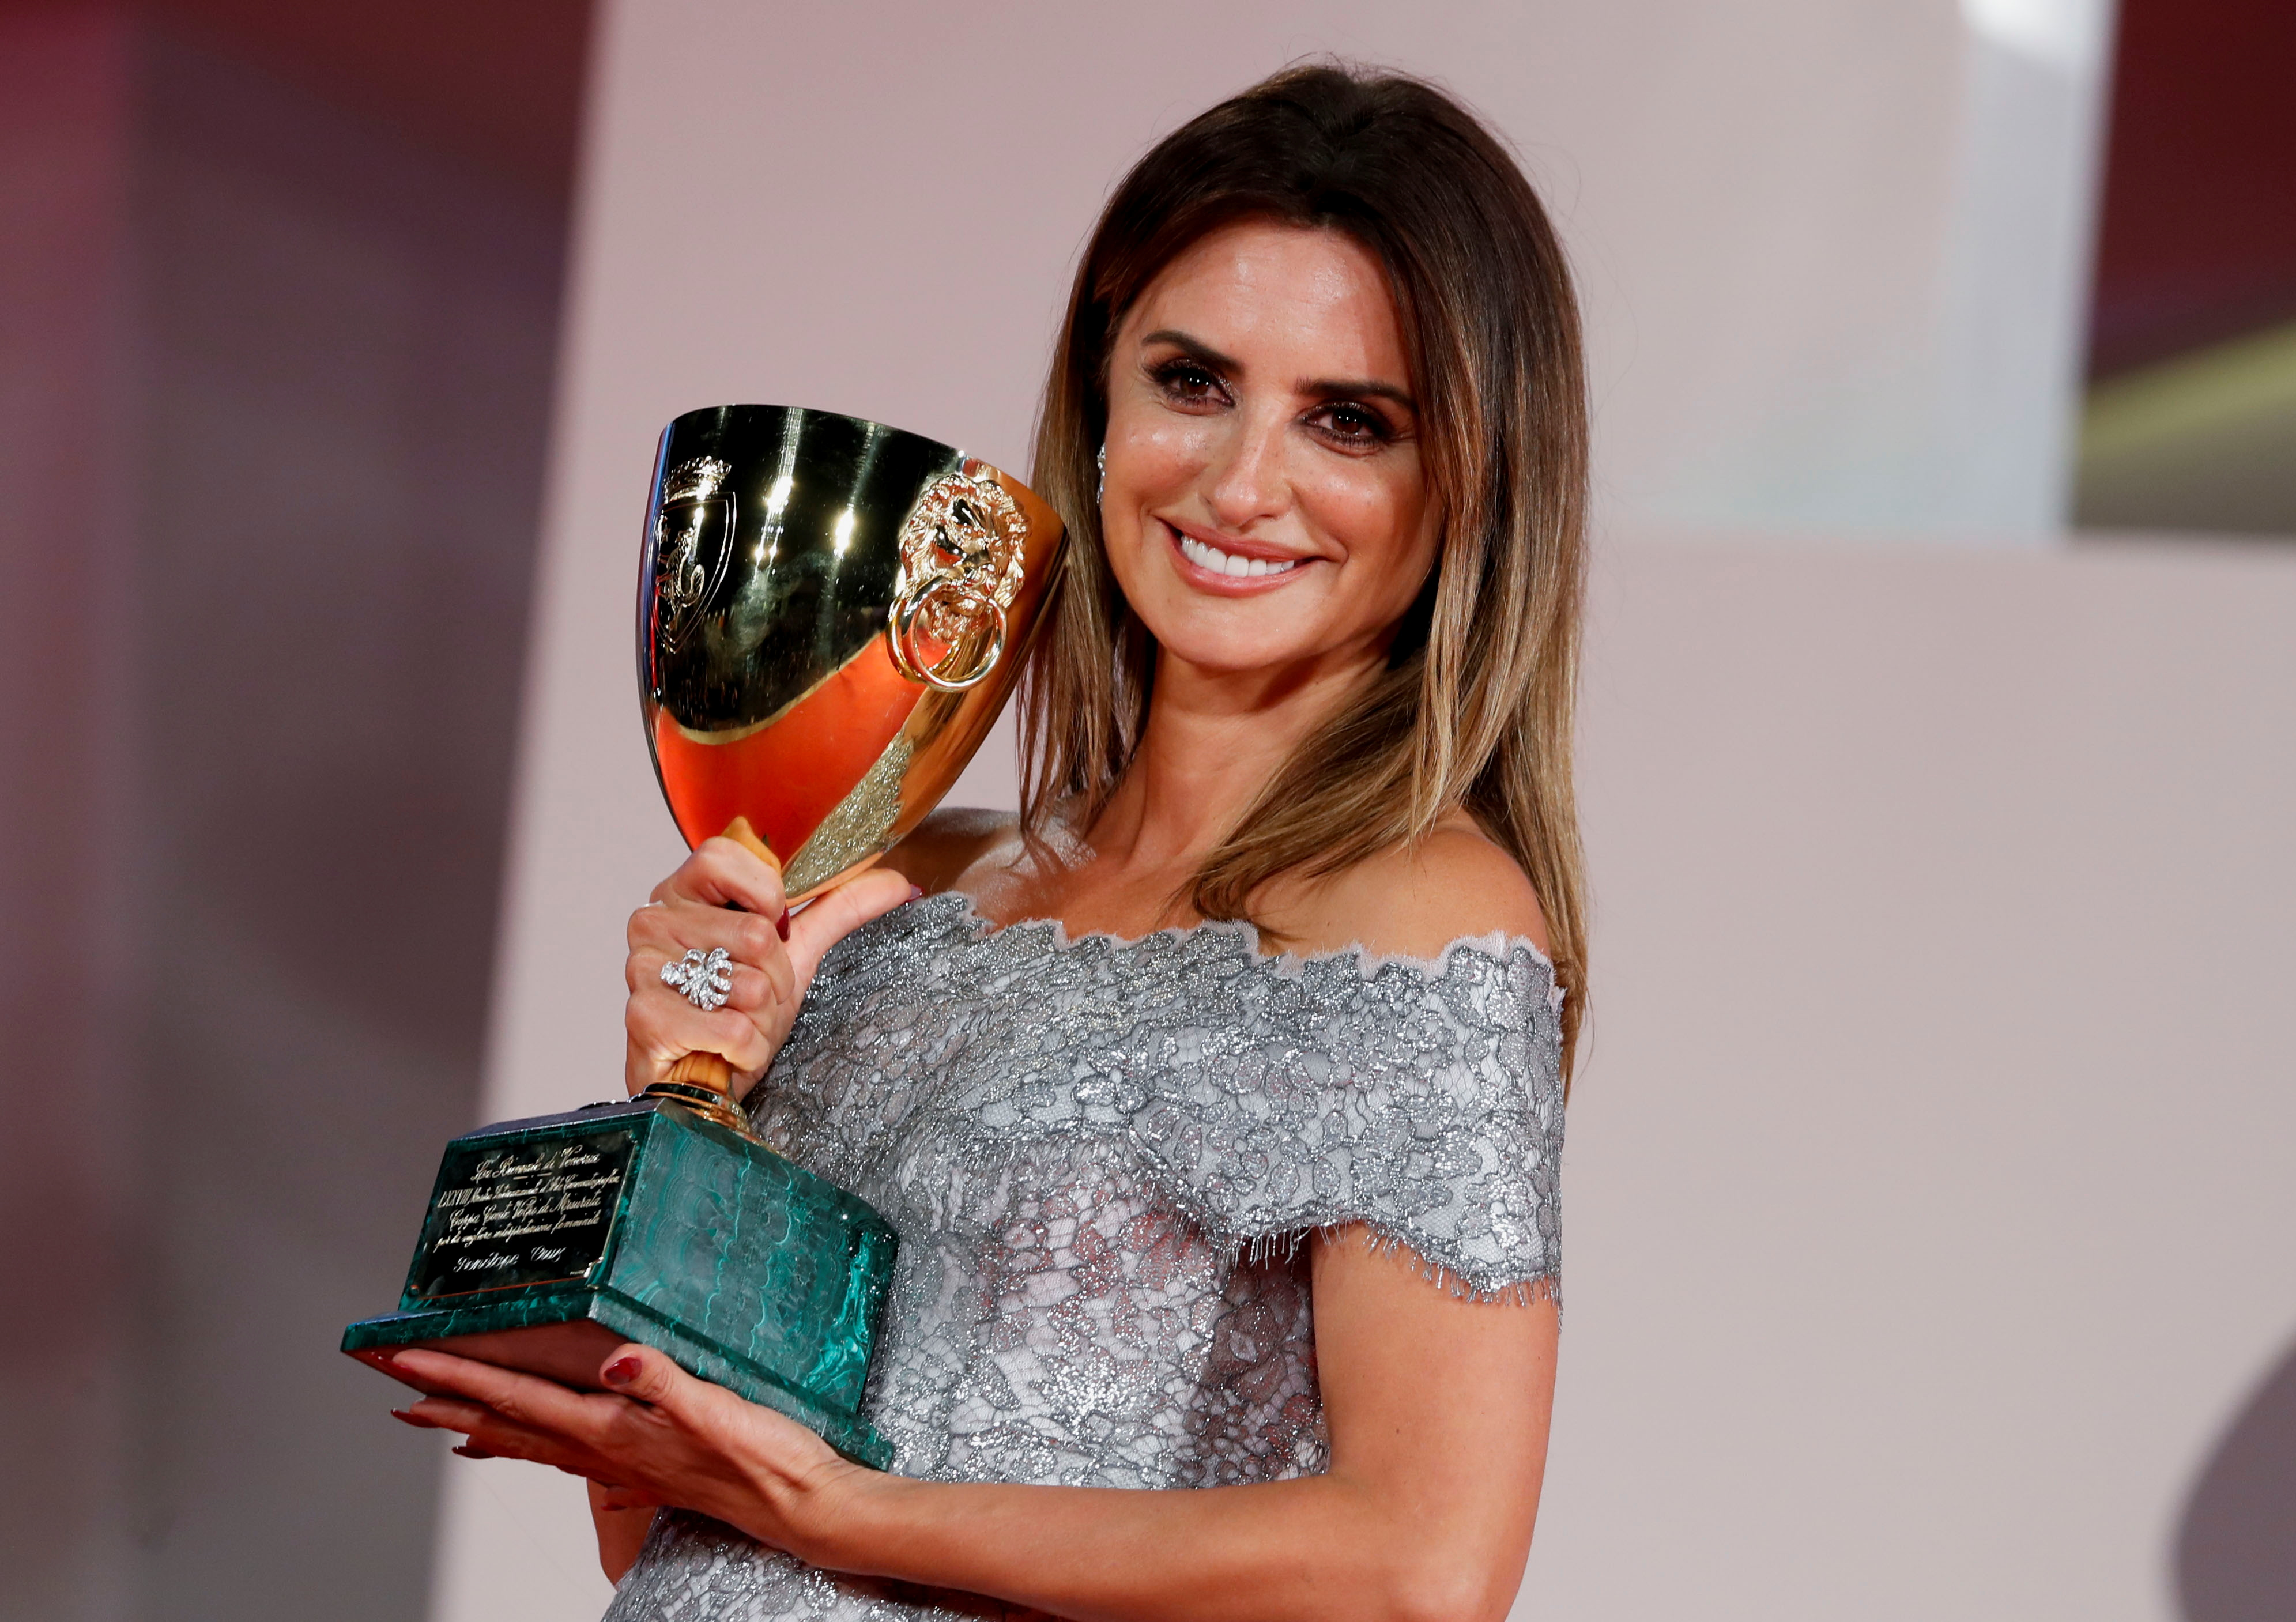 The 78th Venice Film Festival - Awards Ceremony - Venice, Italy, September 11, 2021 - Actor Penelope Cruz poses with her Coppa Volpi Award for Best Actress. REUTERS/Yara Nardi